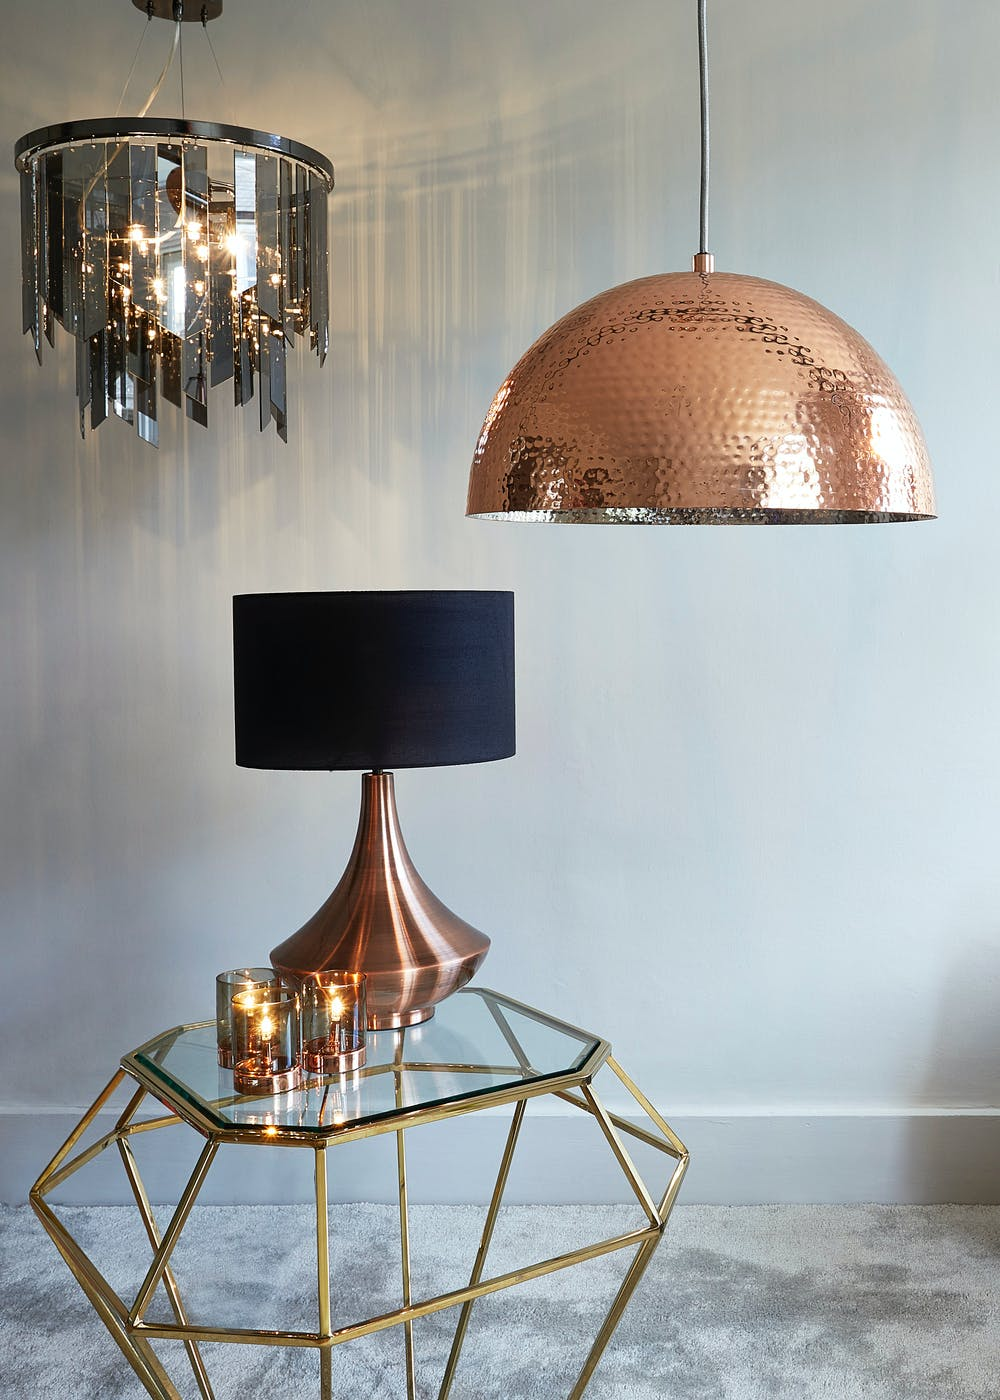 pair at for furniture f copper table id lamps sale img henningsen of l poul lamp org lighting